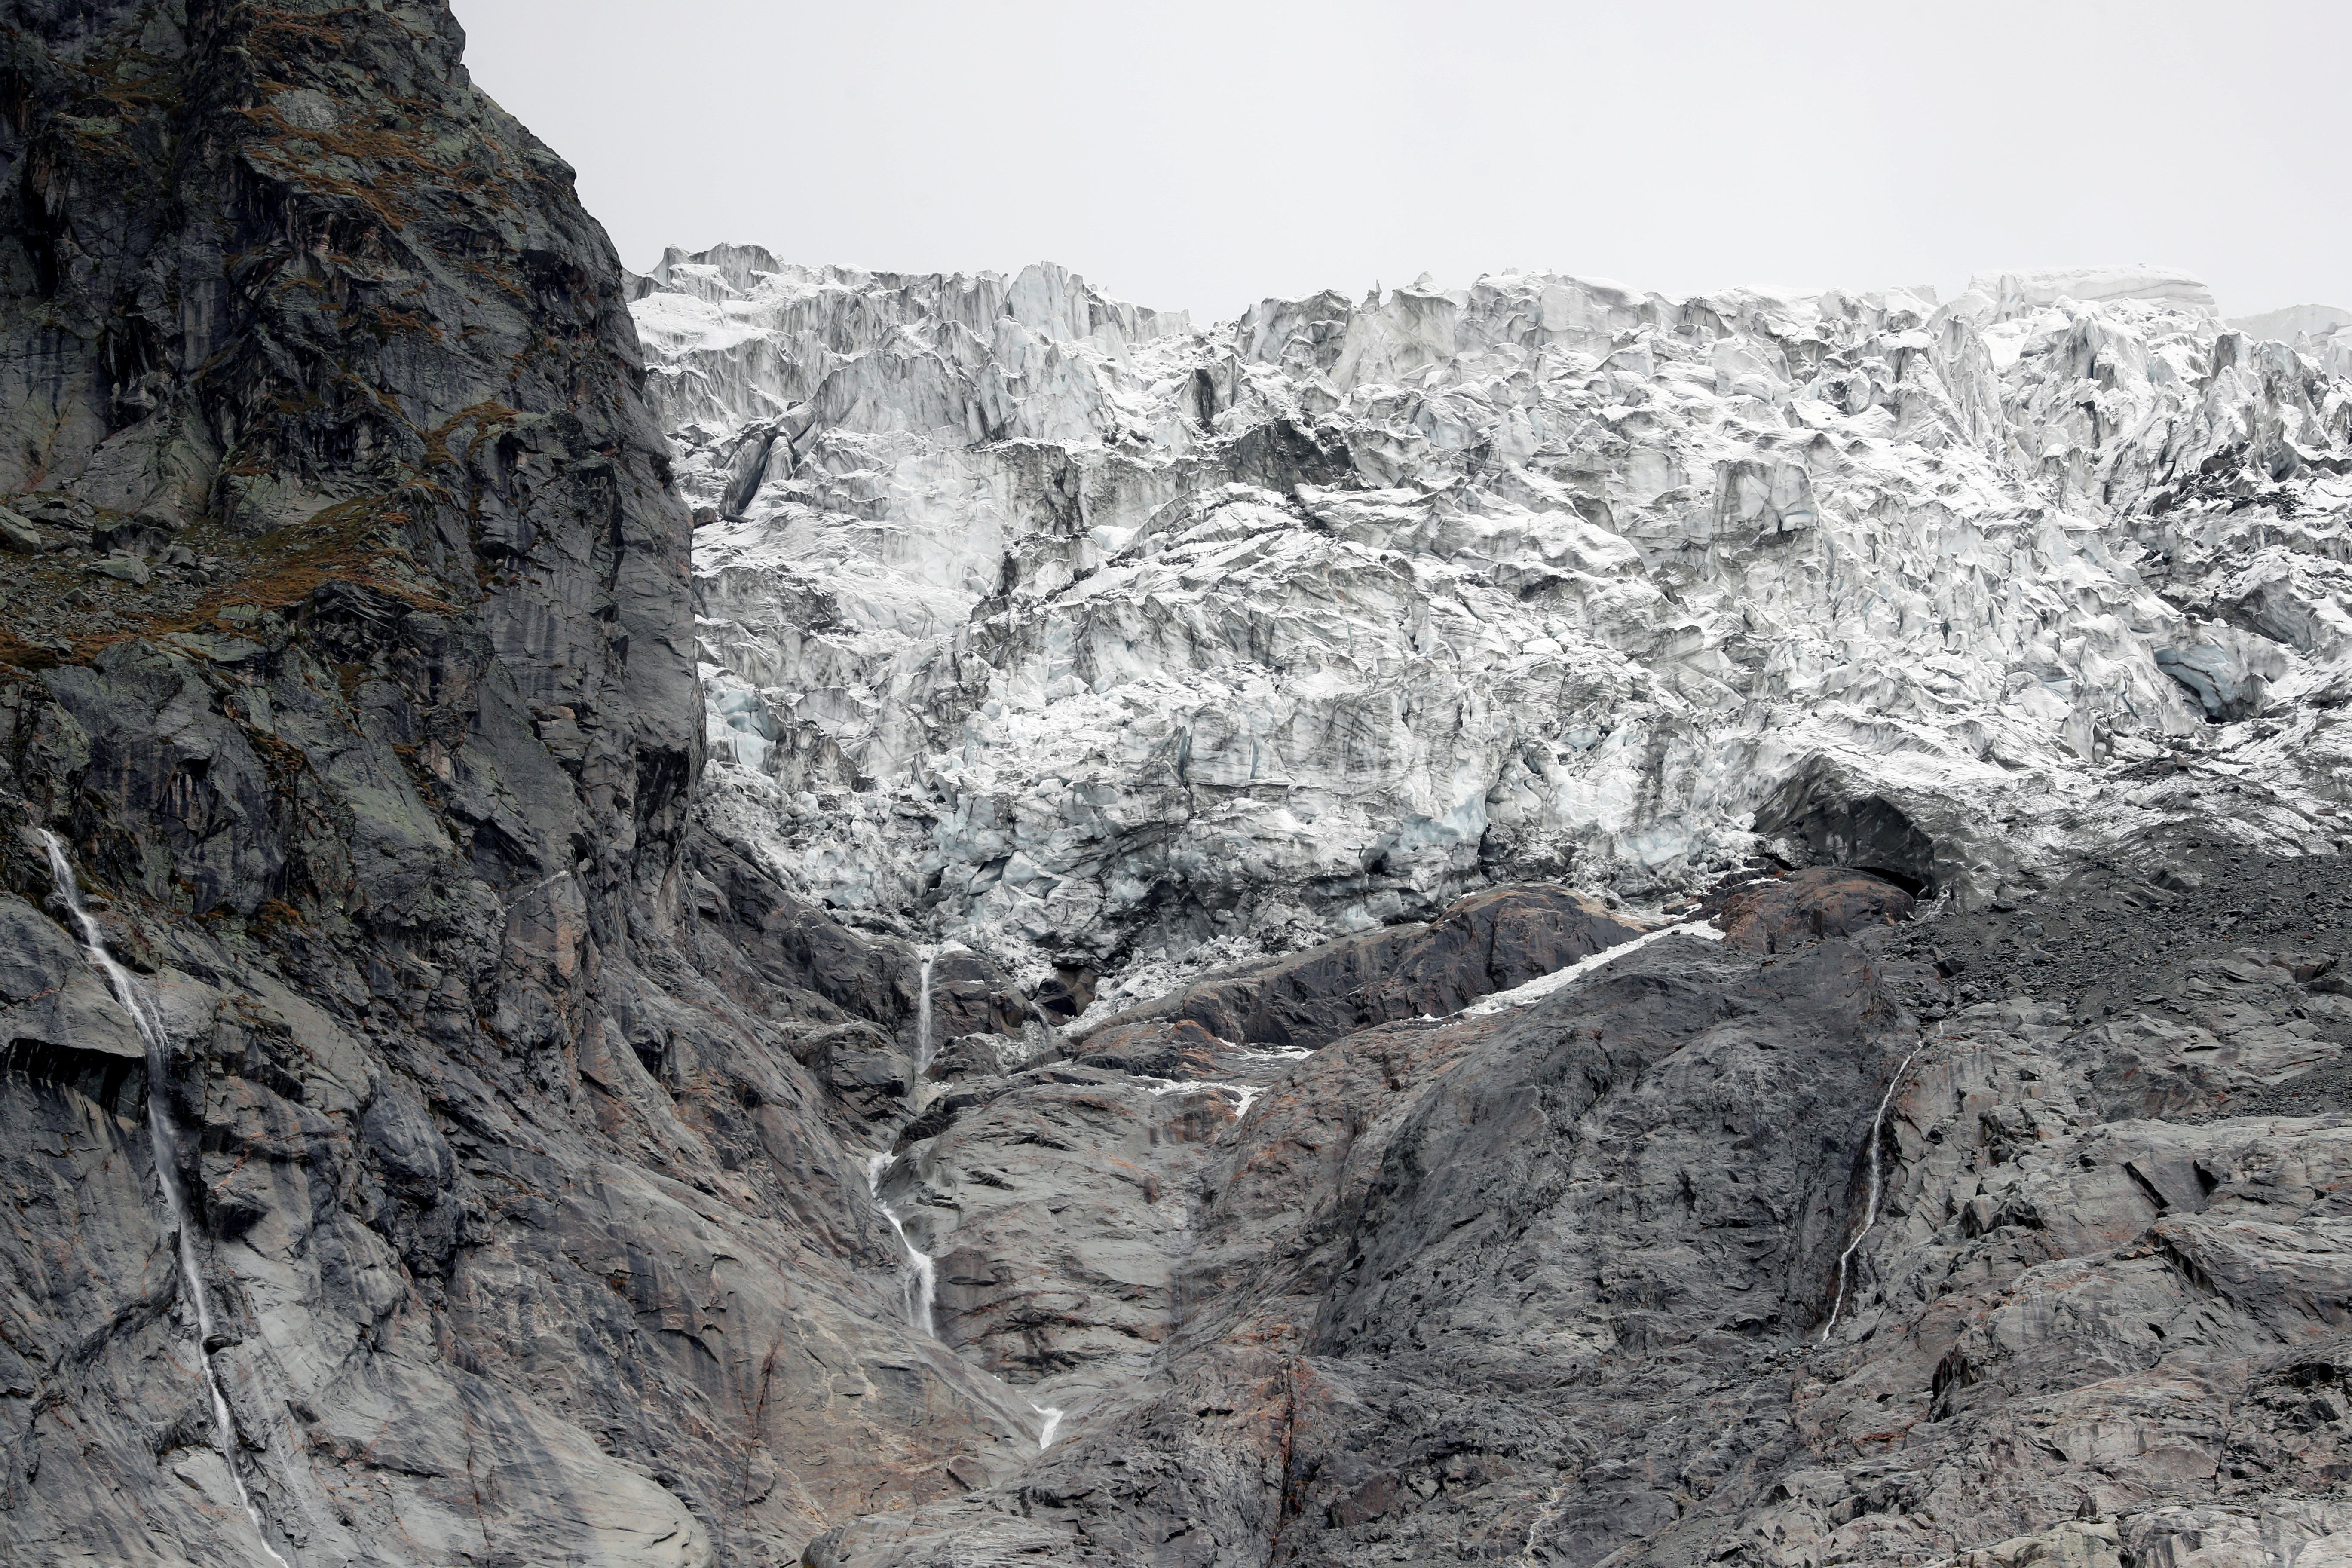 A segment of the Planpincieux glacier is seen on the Italian side of the Mont Blanc massif area of Planpincieux, Aosta, Italy, September 26, 2019. REUTERS/Yara Nardi - RC1EB2CBA040